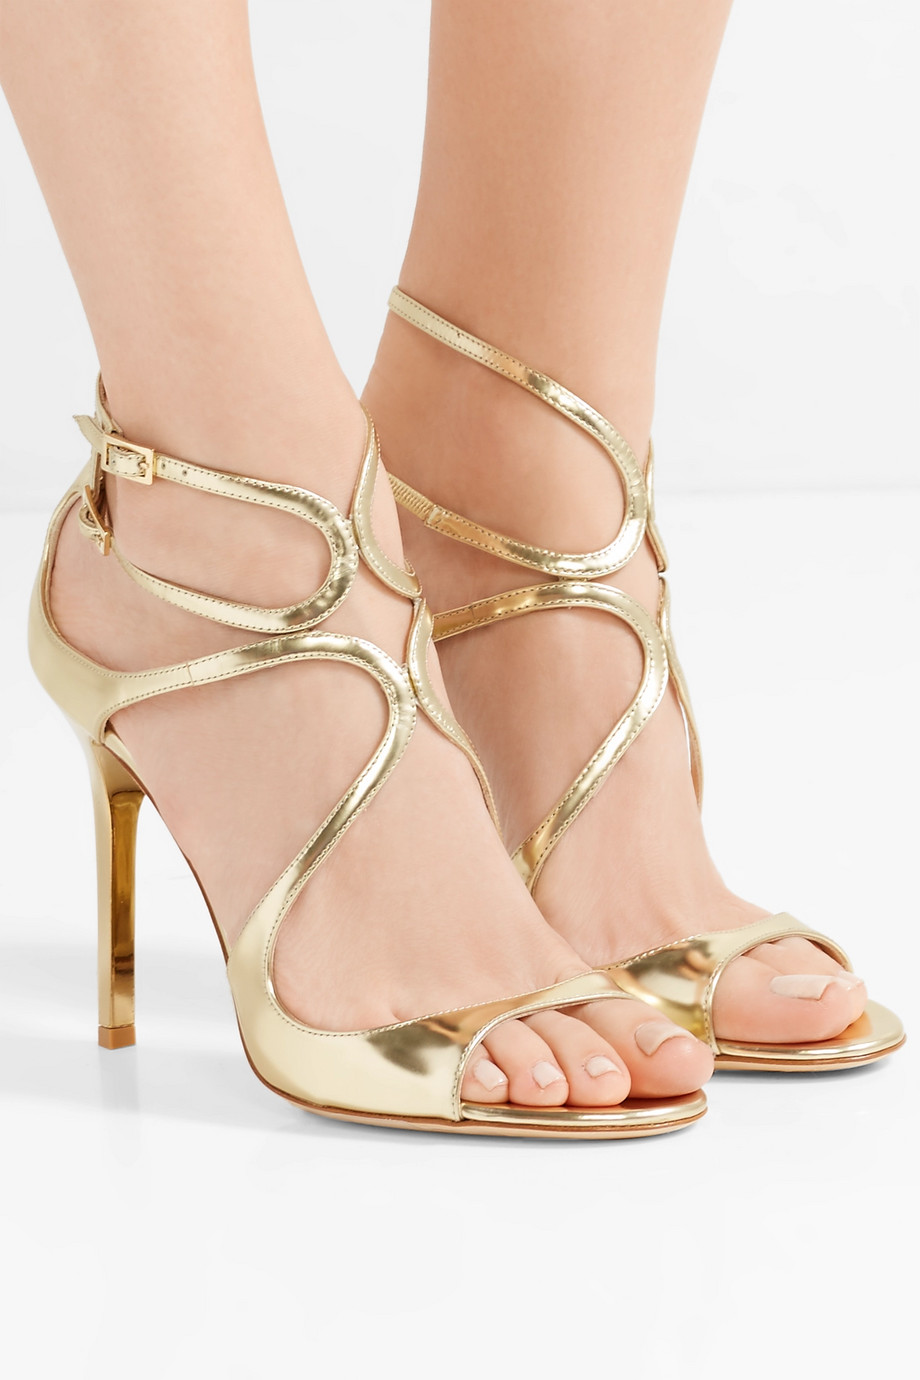 Jimmy Choo Lang 100 metallic leather sandals